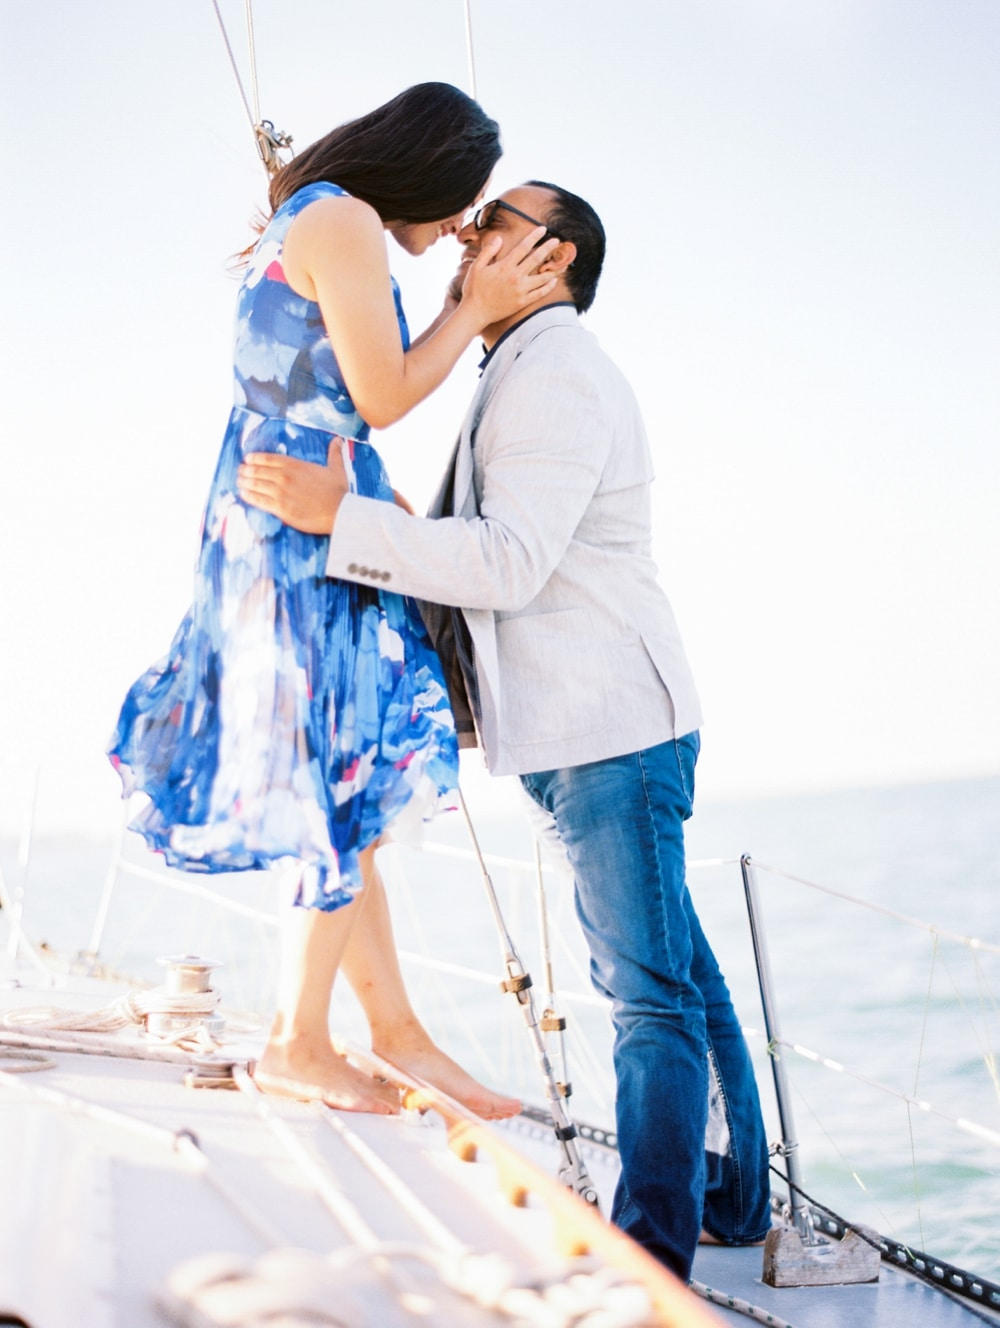 kristin-la-voie-photography-Chicago-wedding-photographer-lake-michigan-sailing-28